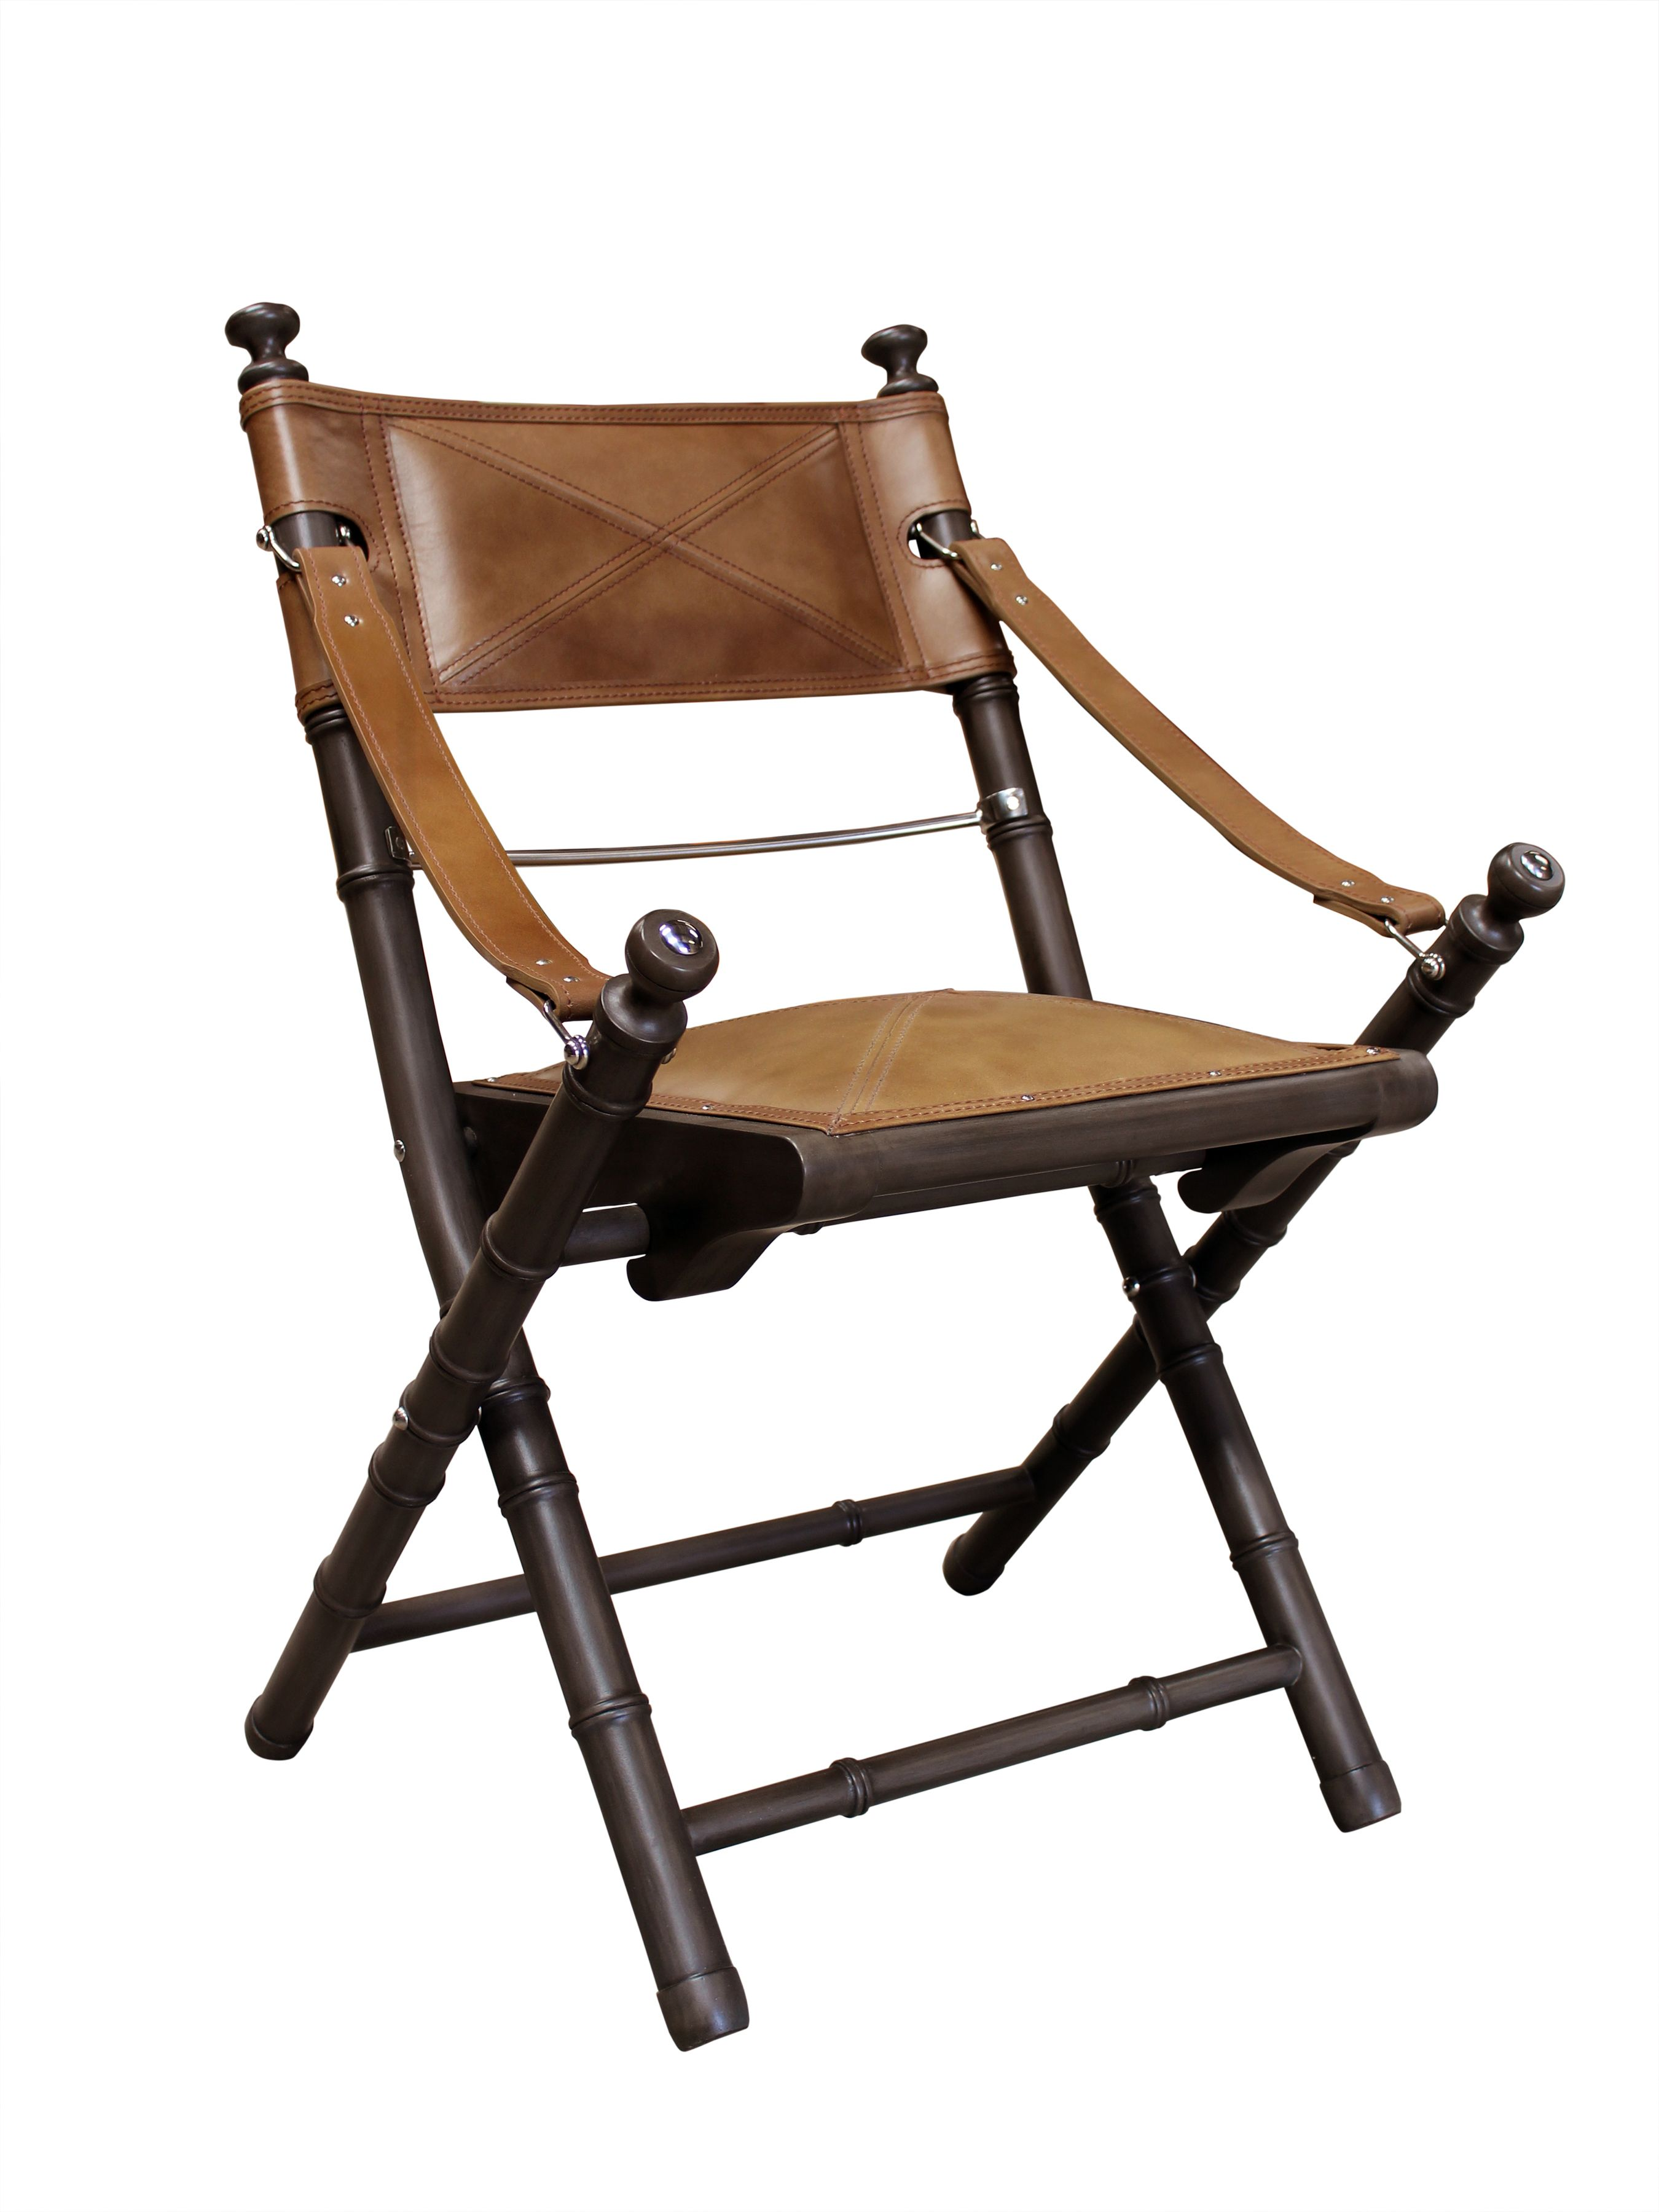 Campaign Chair By Prizmic And Brill Classic Home Furniture Chair British Colonial Style